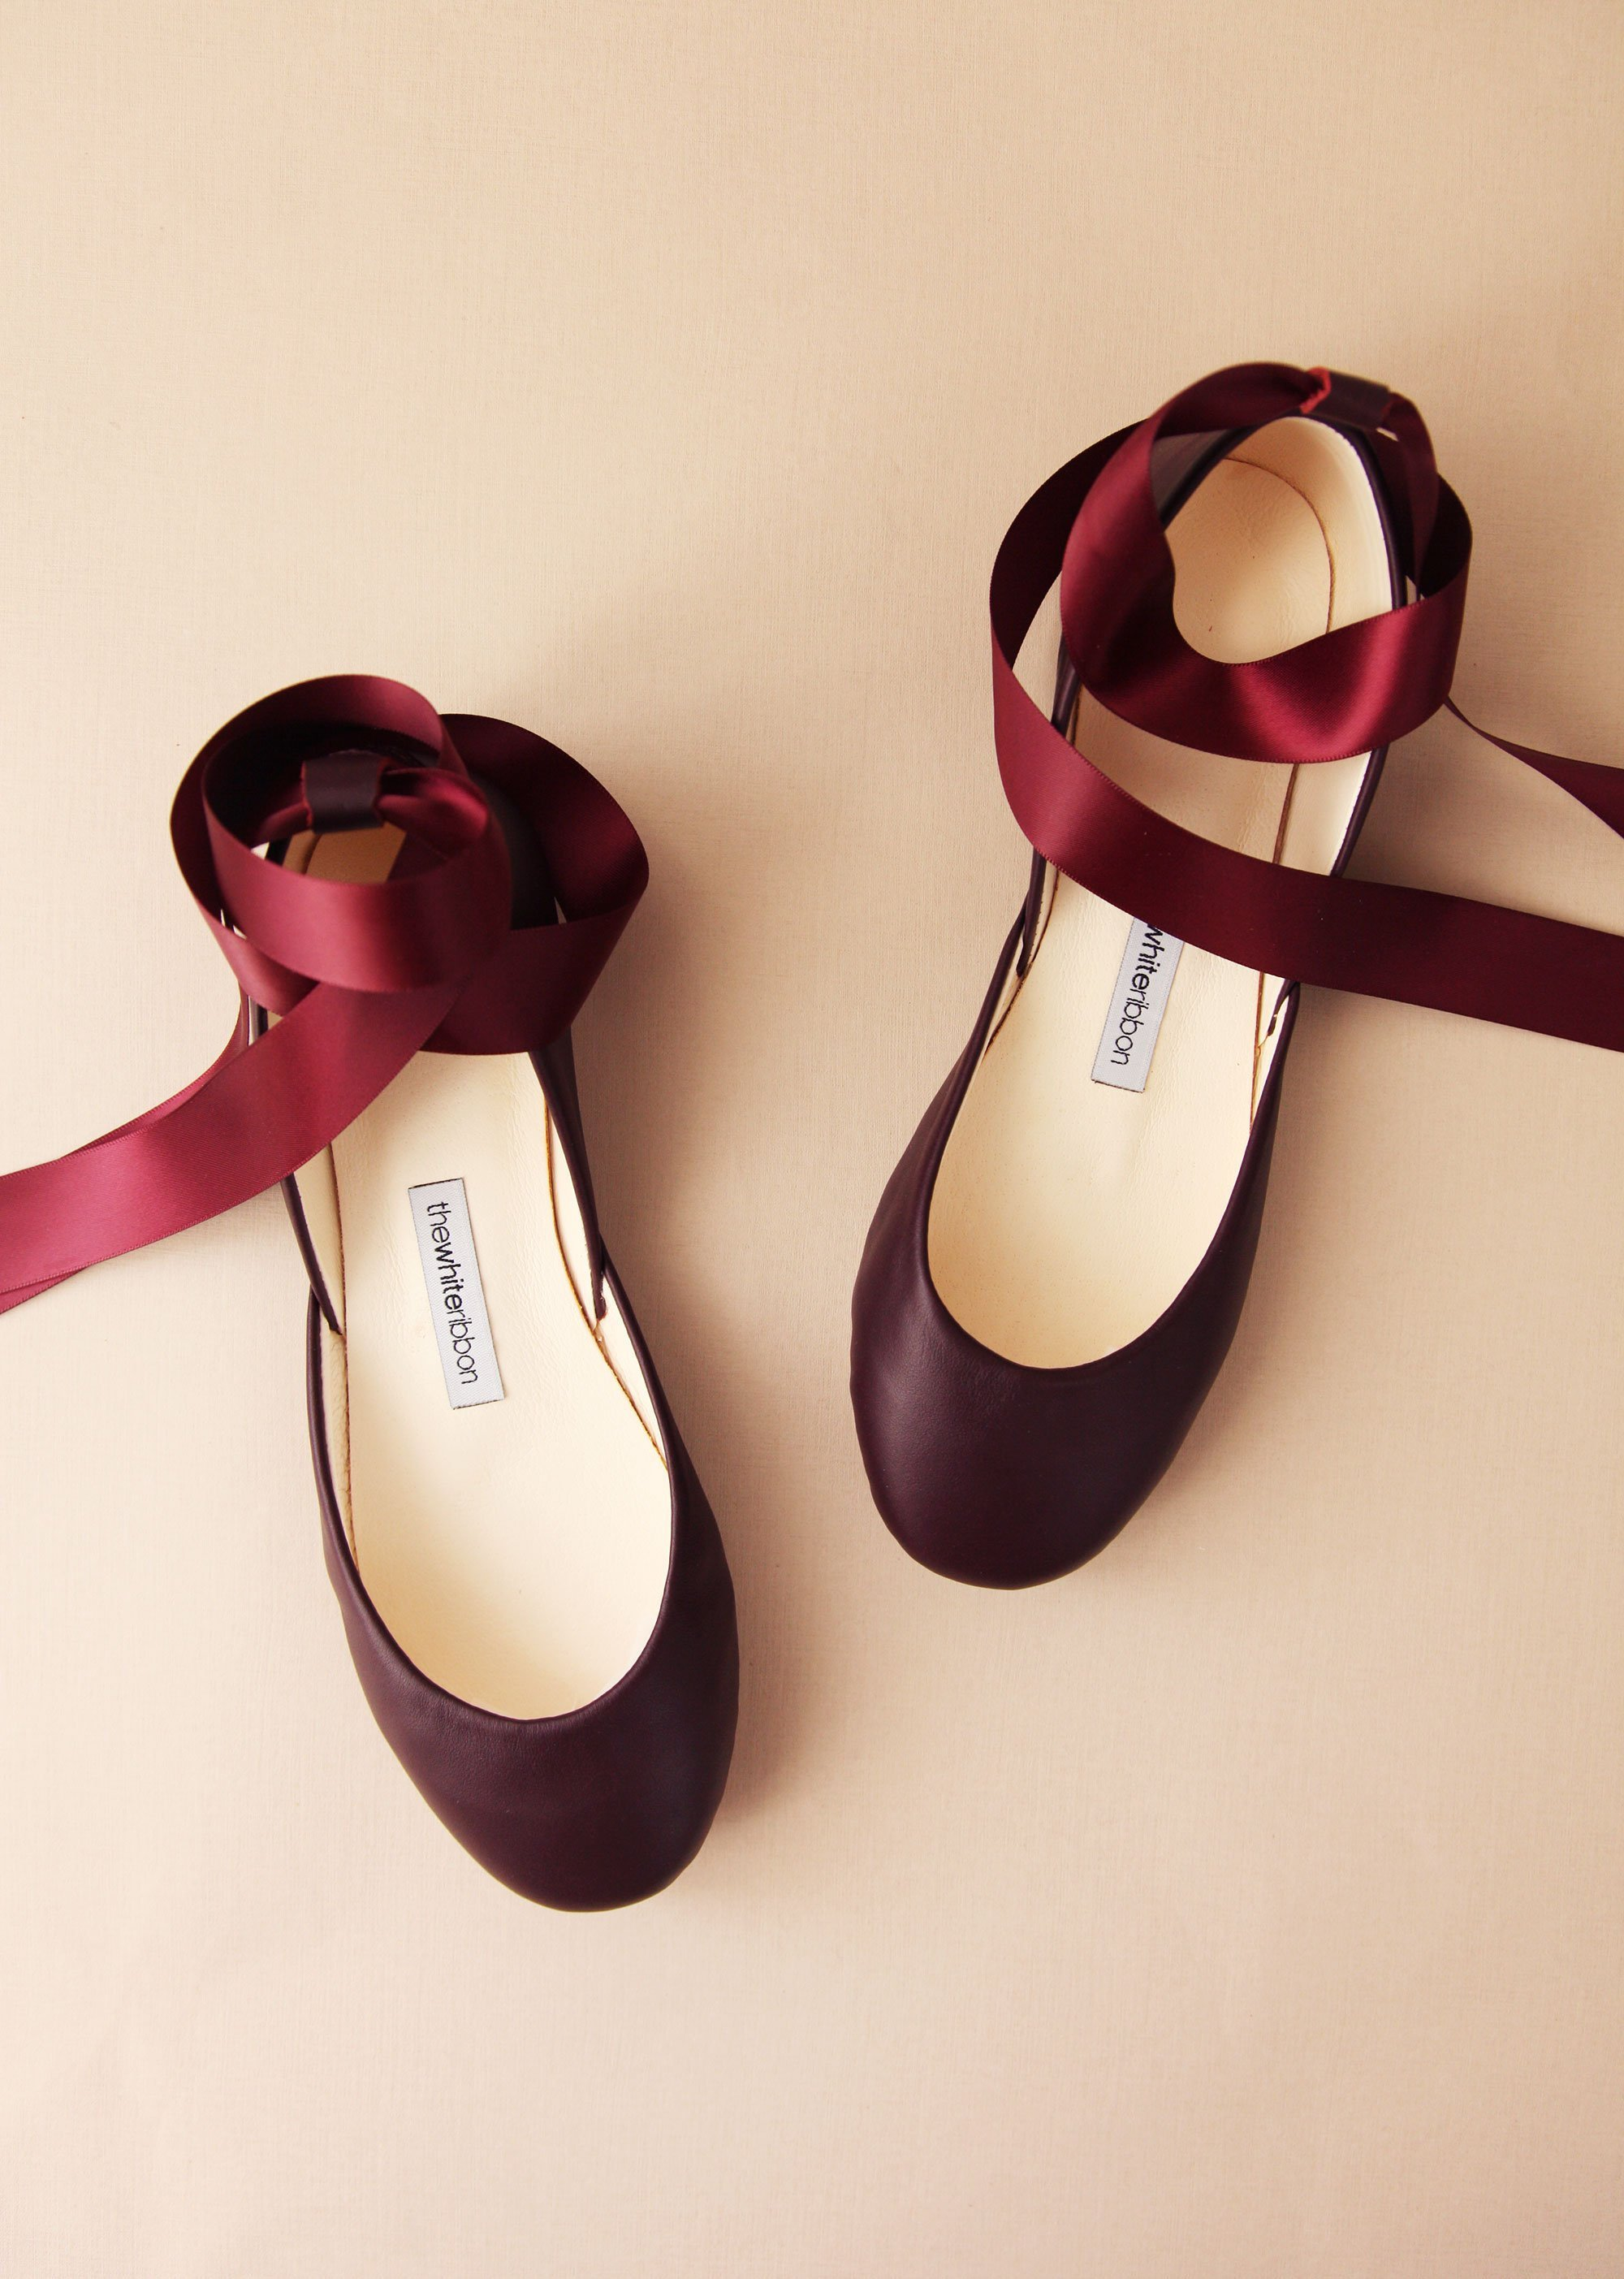 Bordeaux Leather Ballet Flats with Ankle Straps.jpg